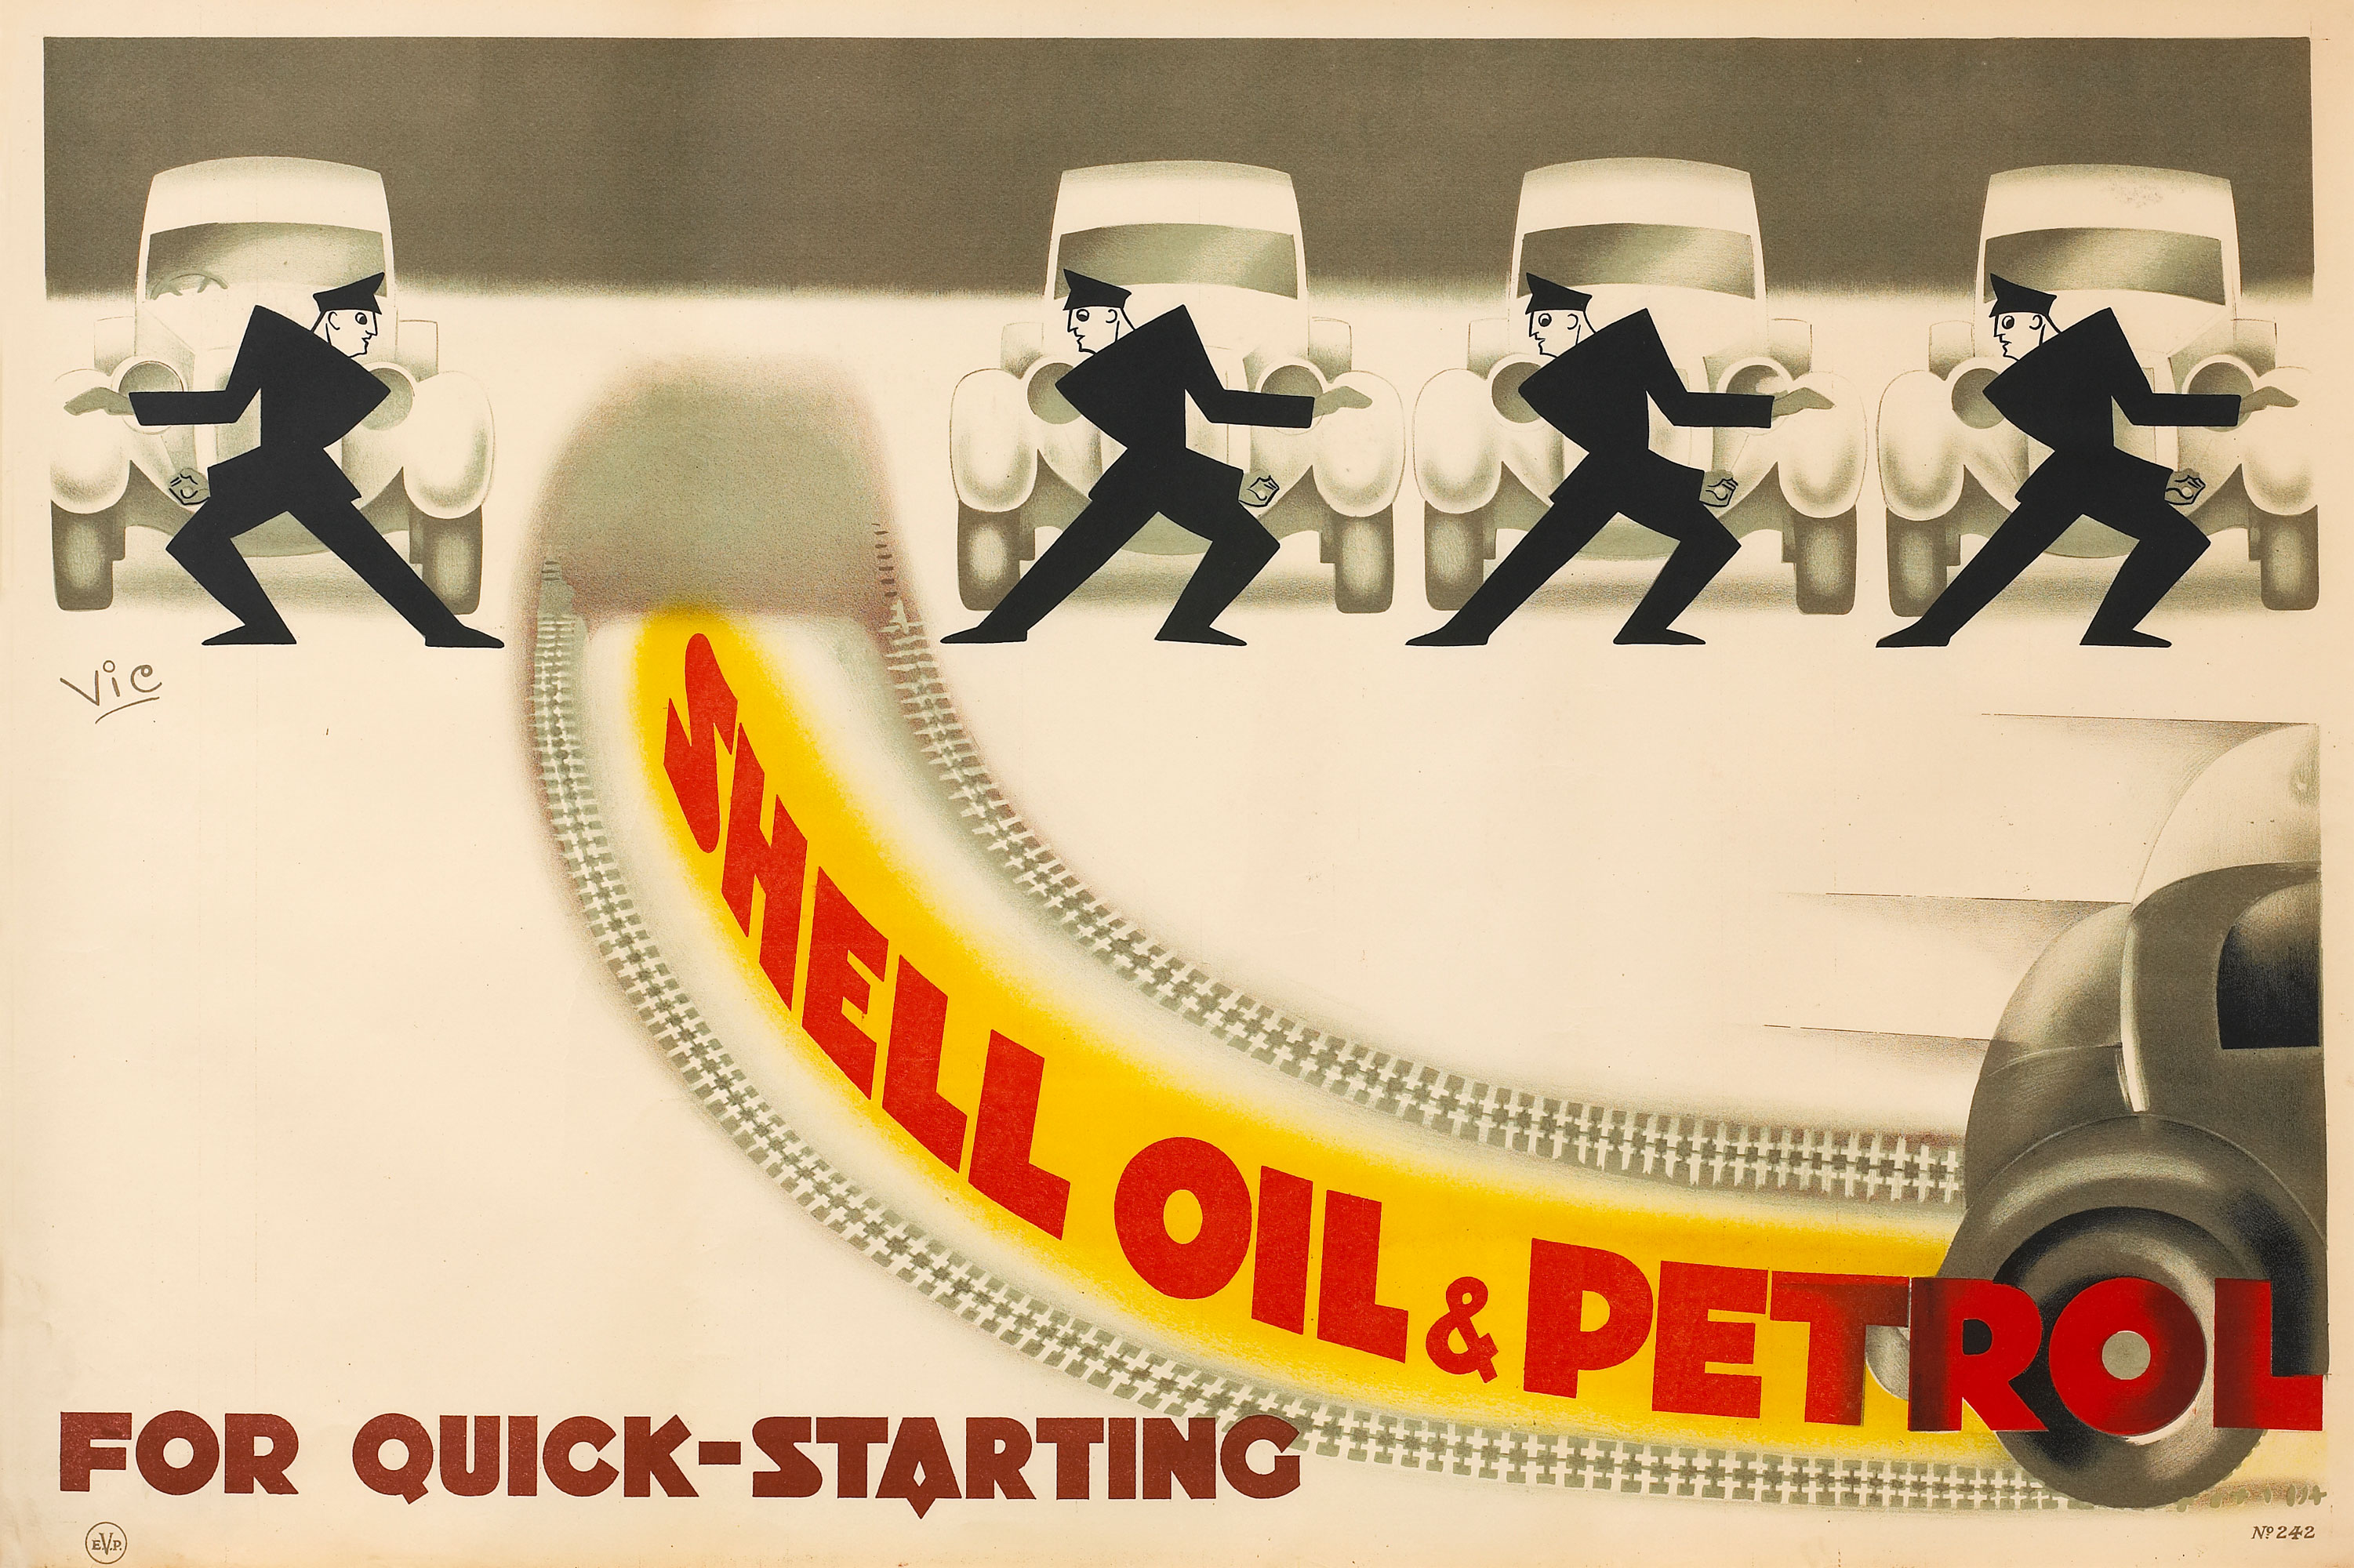 "Shell poster number 242, Cars and Chaffeurs by Vic. Stylised cartoon of chauffeurs with their cars. Caption reads; ""Shell Oil & Petrol for quick starting""."